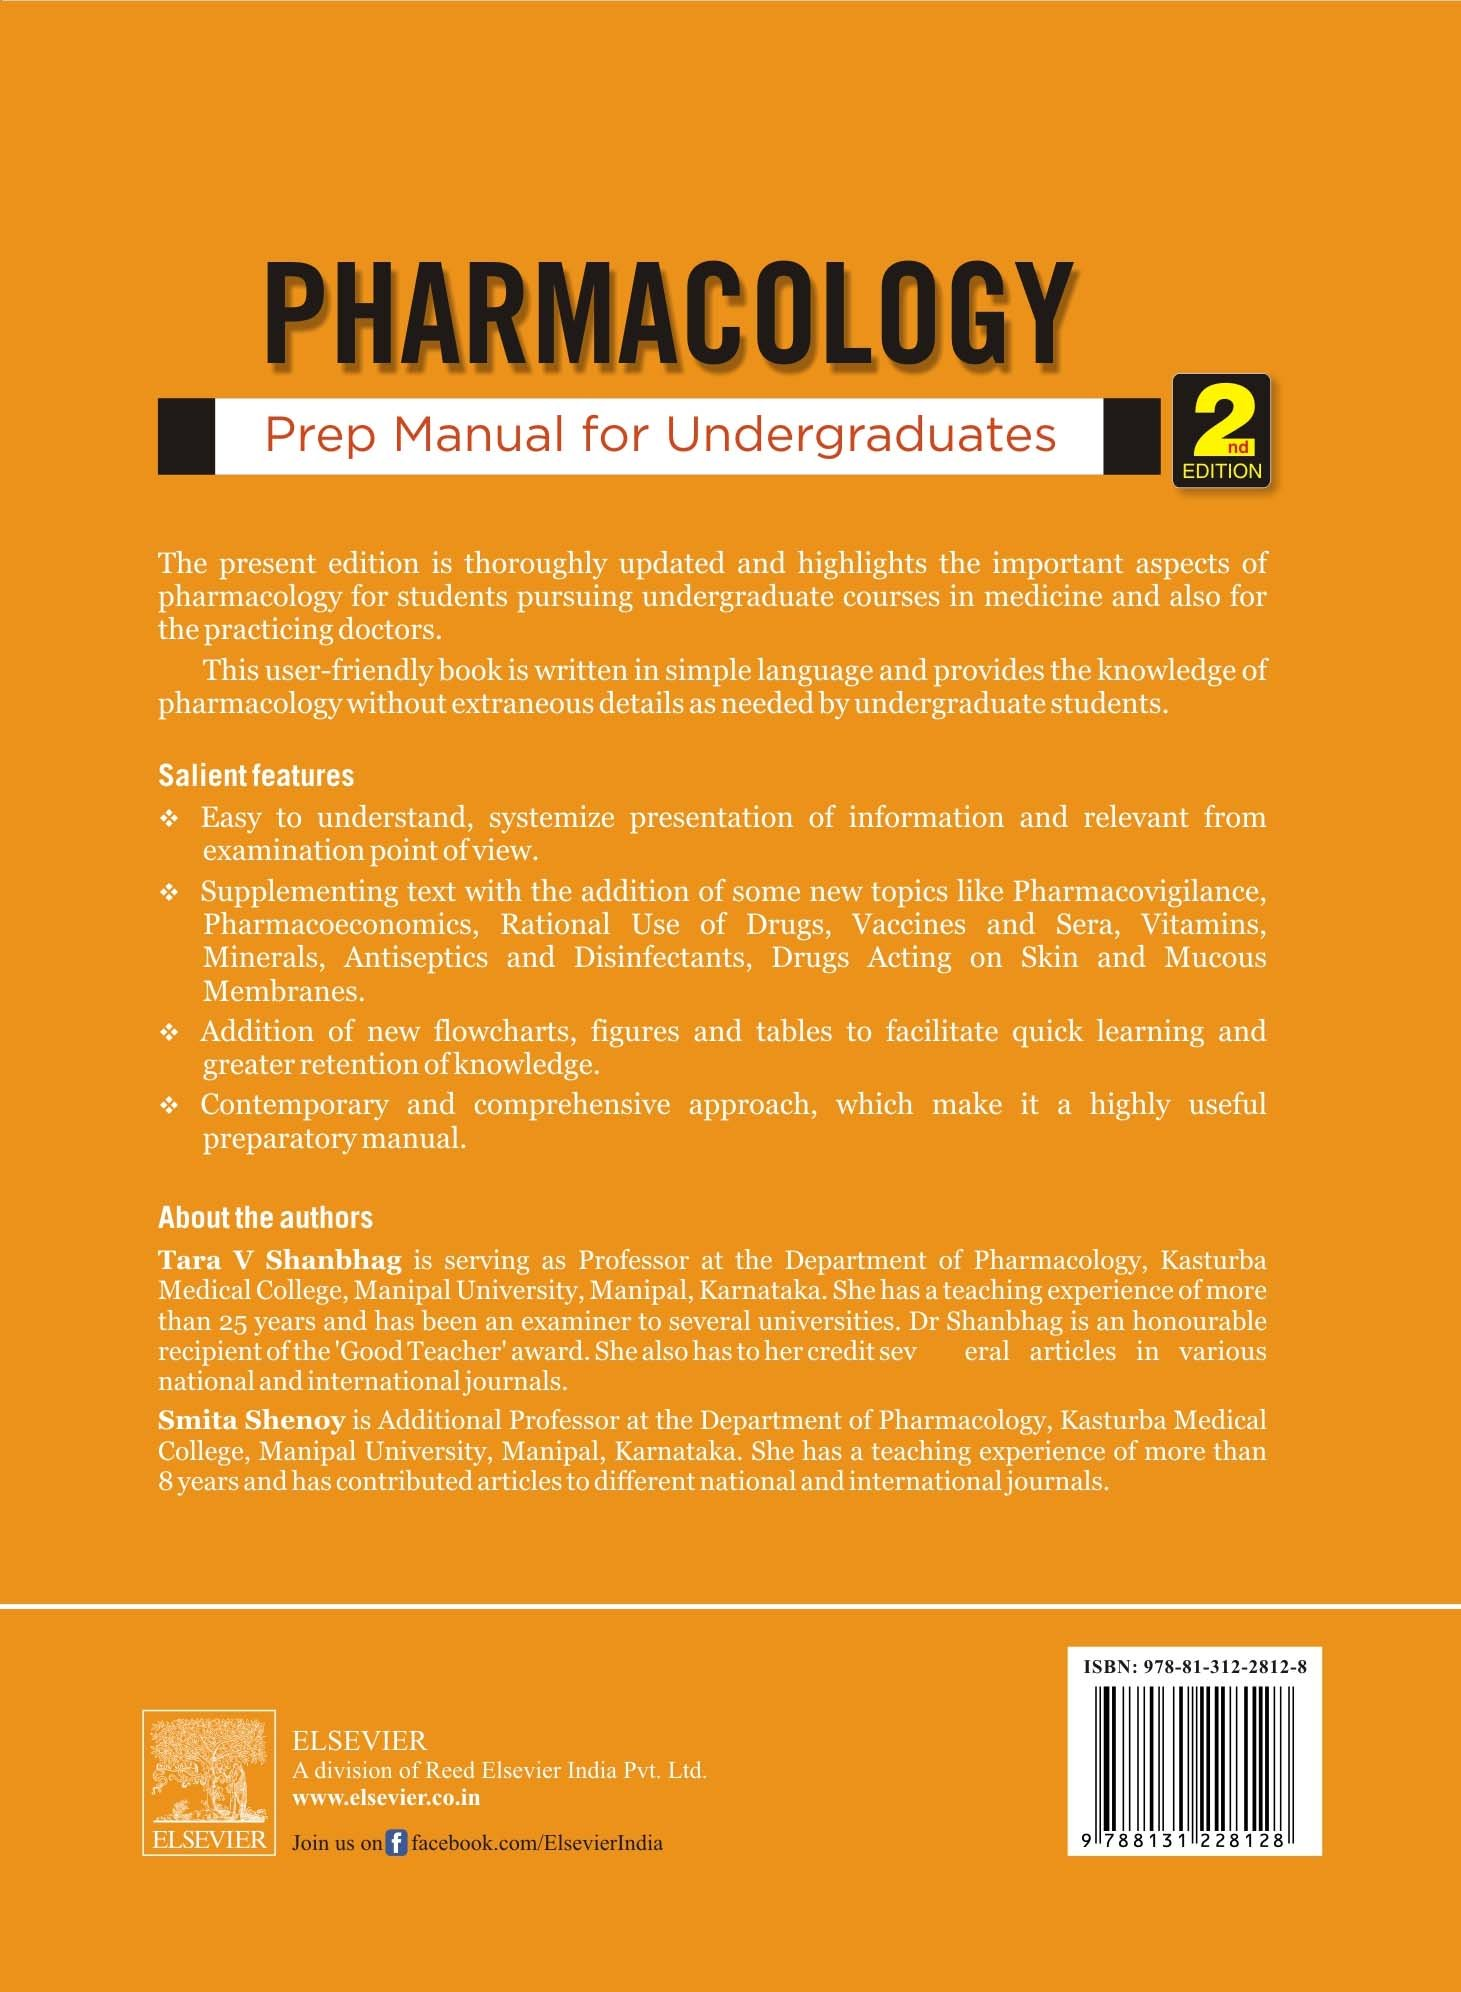 Buy Pharmacology Prep Manual For Undergraduates Old Edition Book